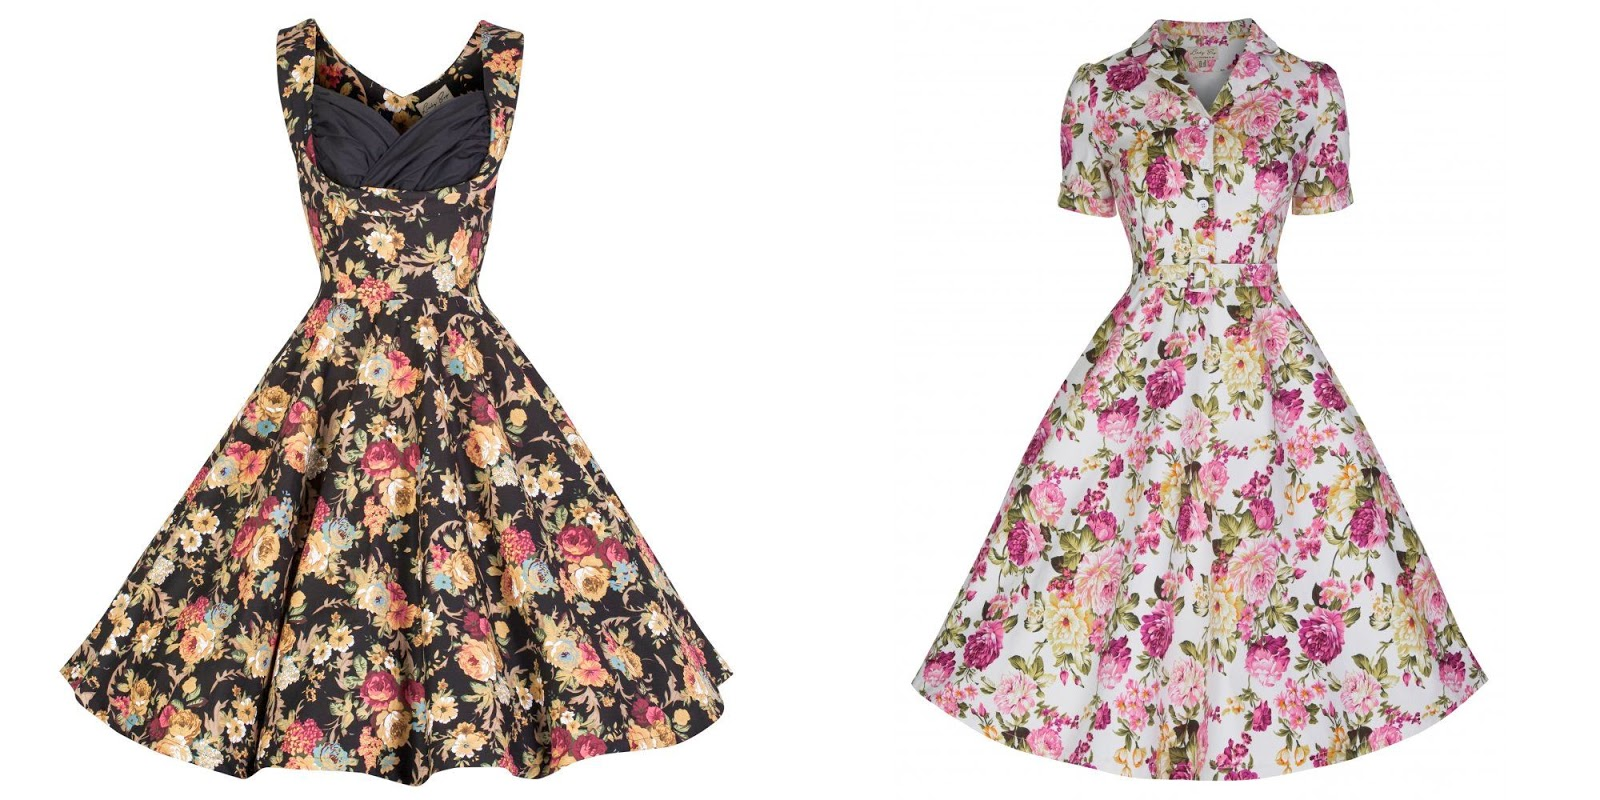 1712e03ddcbe 'Ophelia' Vintage 1950's Black Floral Spring Garden Party Picnic Dress was  my first Lindy Bop purchase. I feel in love with that dress because of her  ...